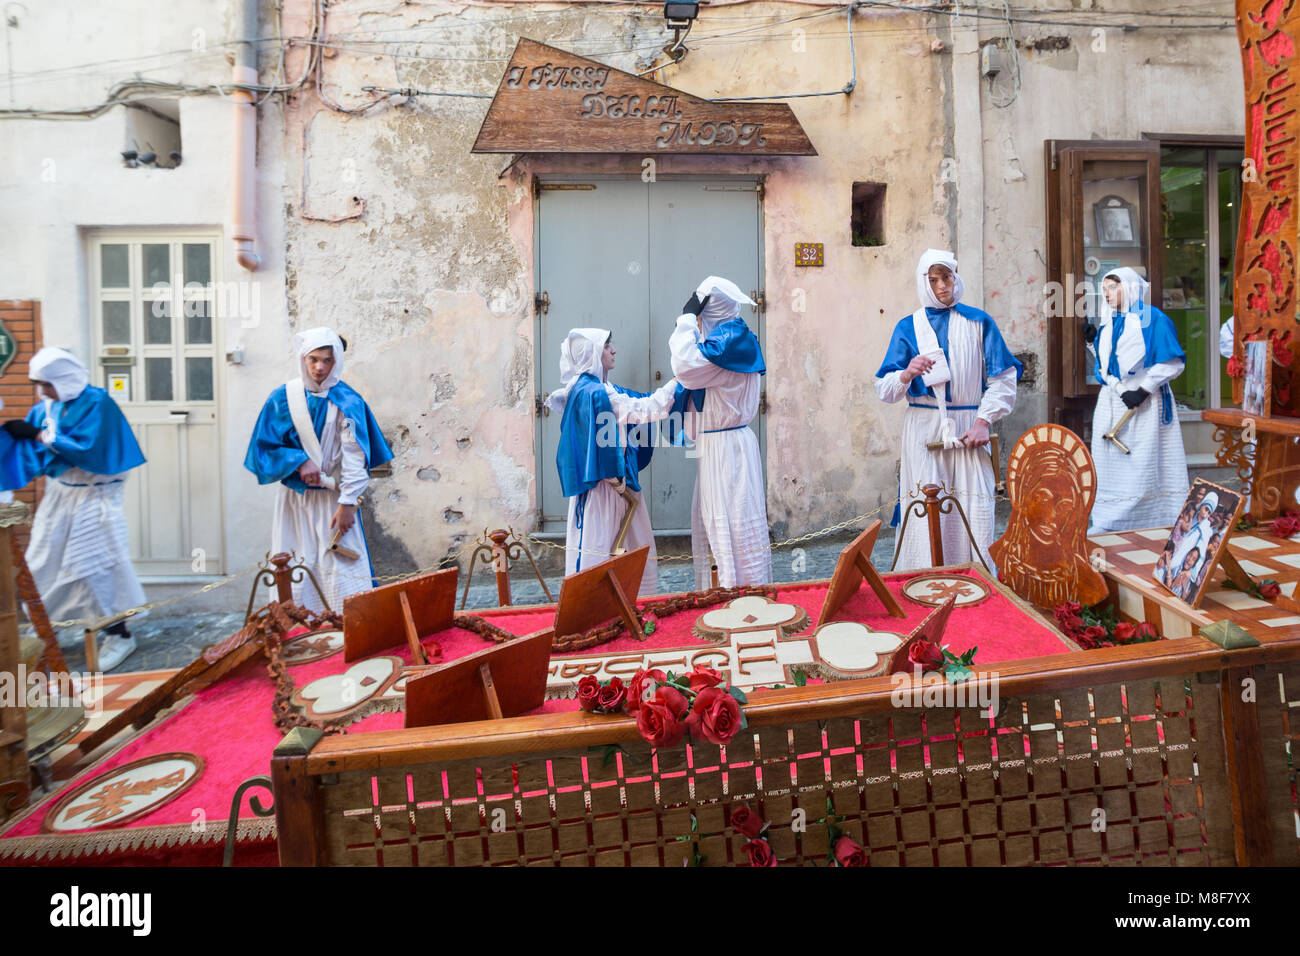 PROCIDA, ITALY - MARCH 25, 2016 - The procession of the 'Misteri'celebrated at Easter's Good Friday - Stock Image